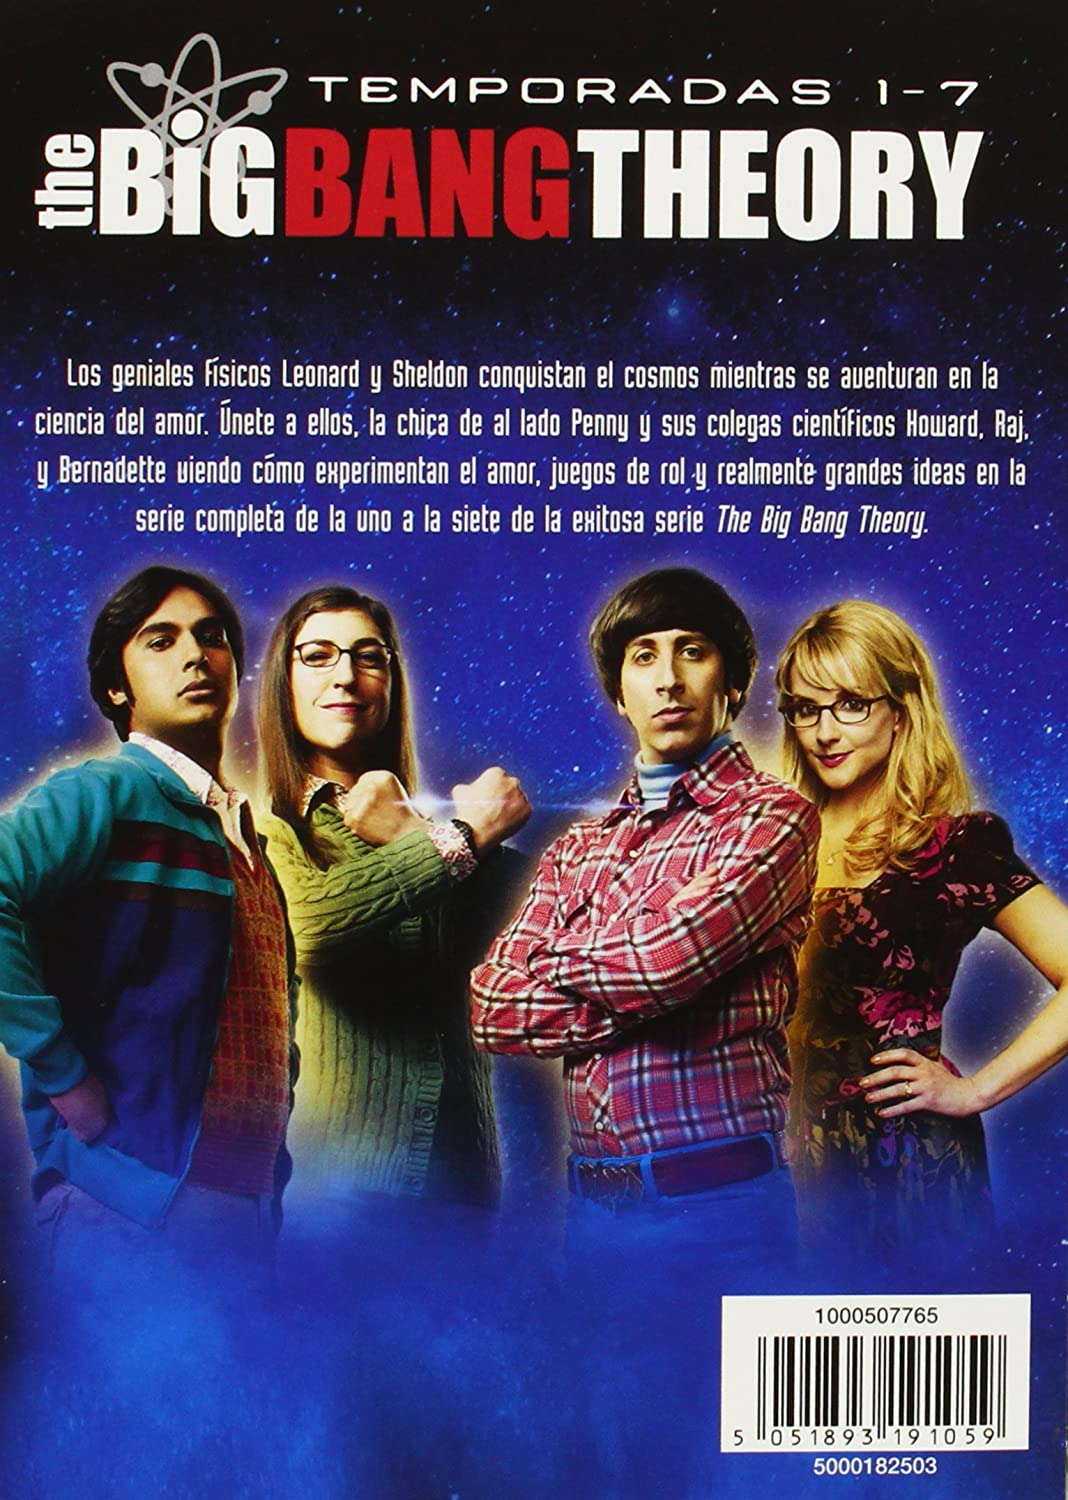 The Big Bang Theory Temporadas 1 7 Dvd Amazon Com Mx  # Muebles Big Bang Theory